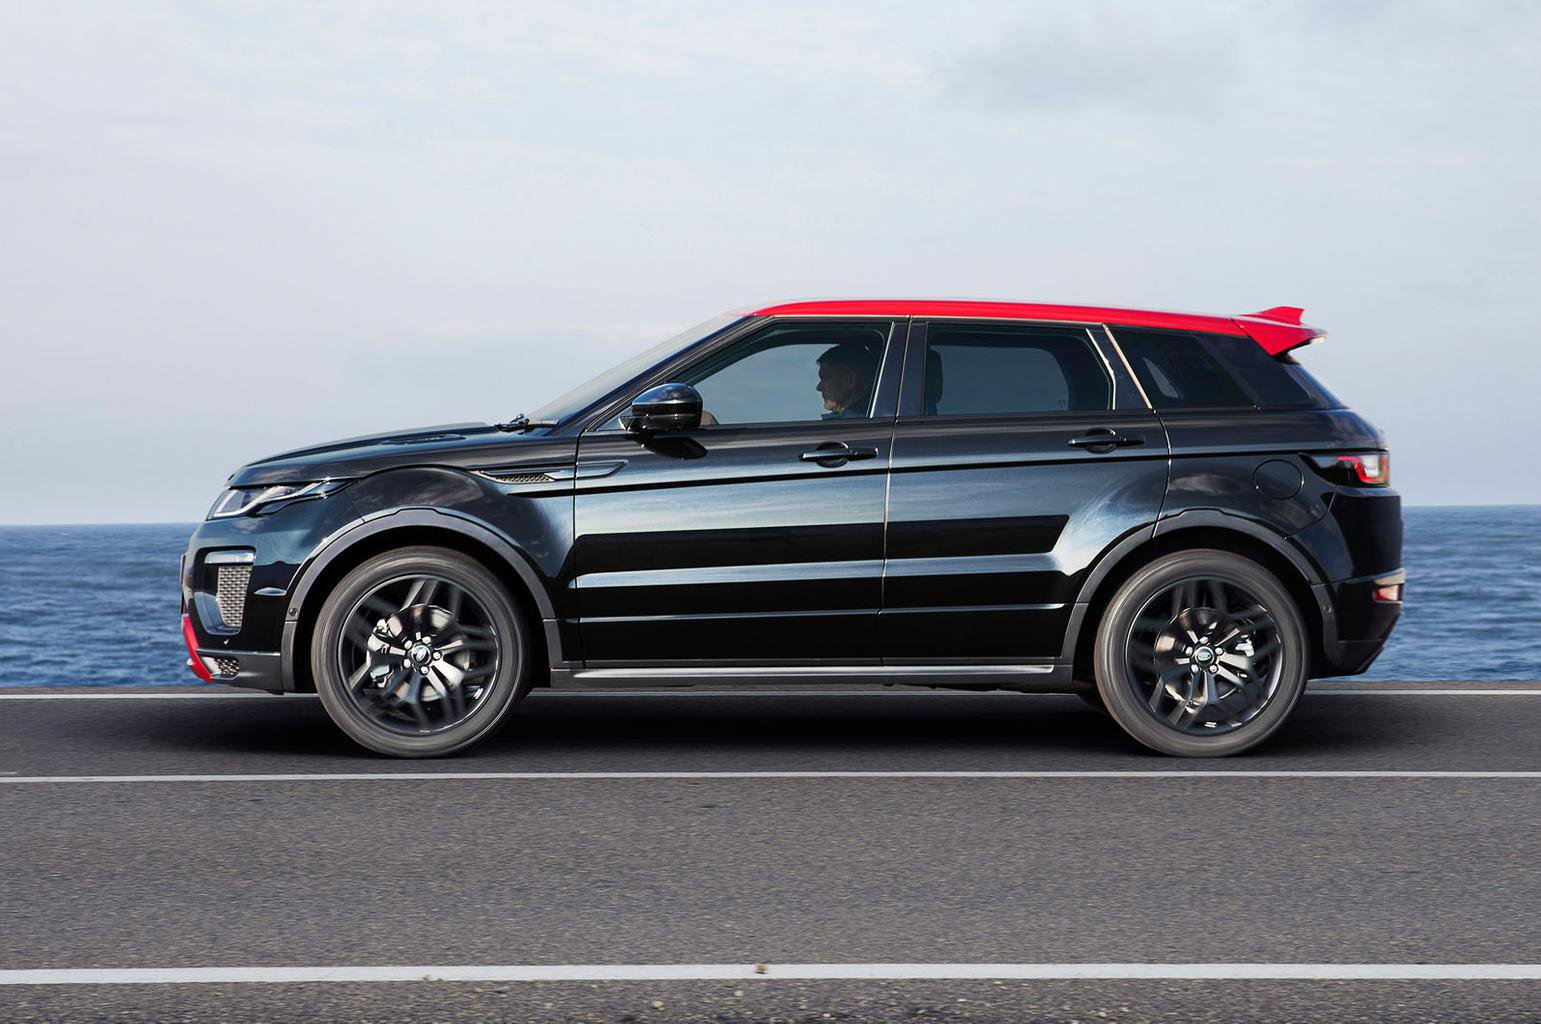 Range Rover Evoque updated for 2017 model year